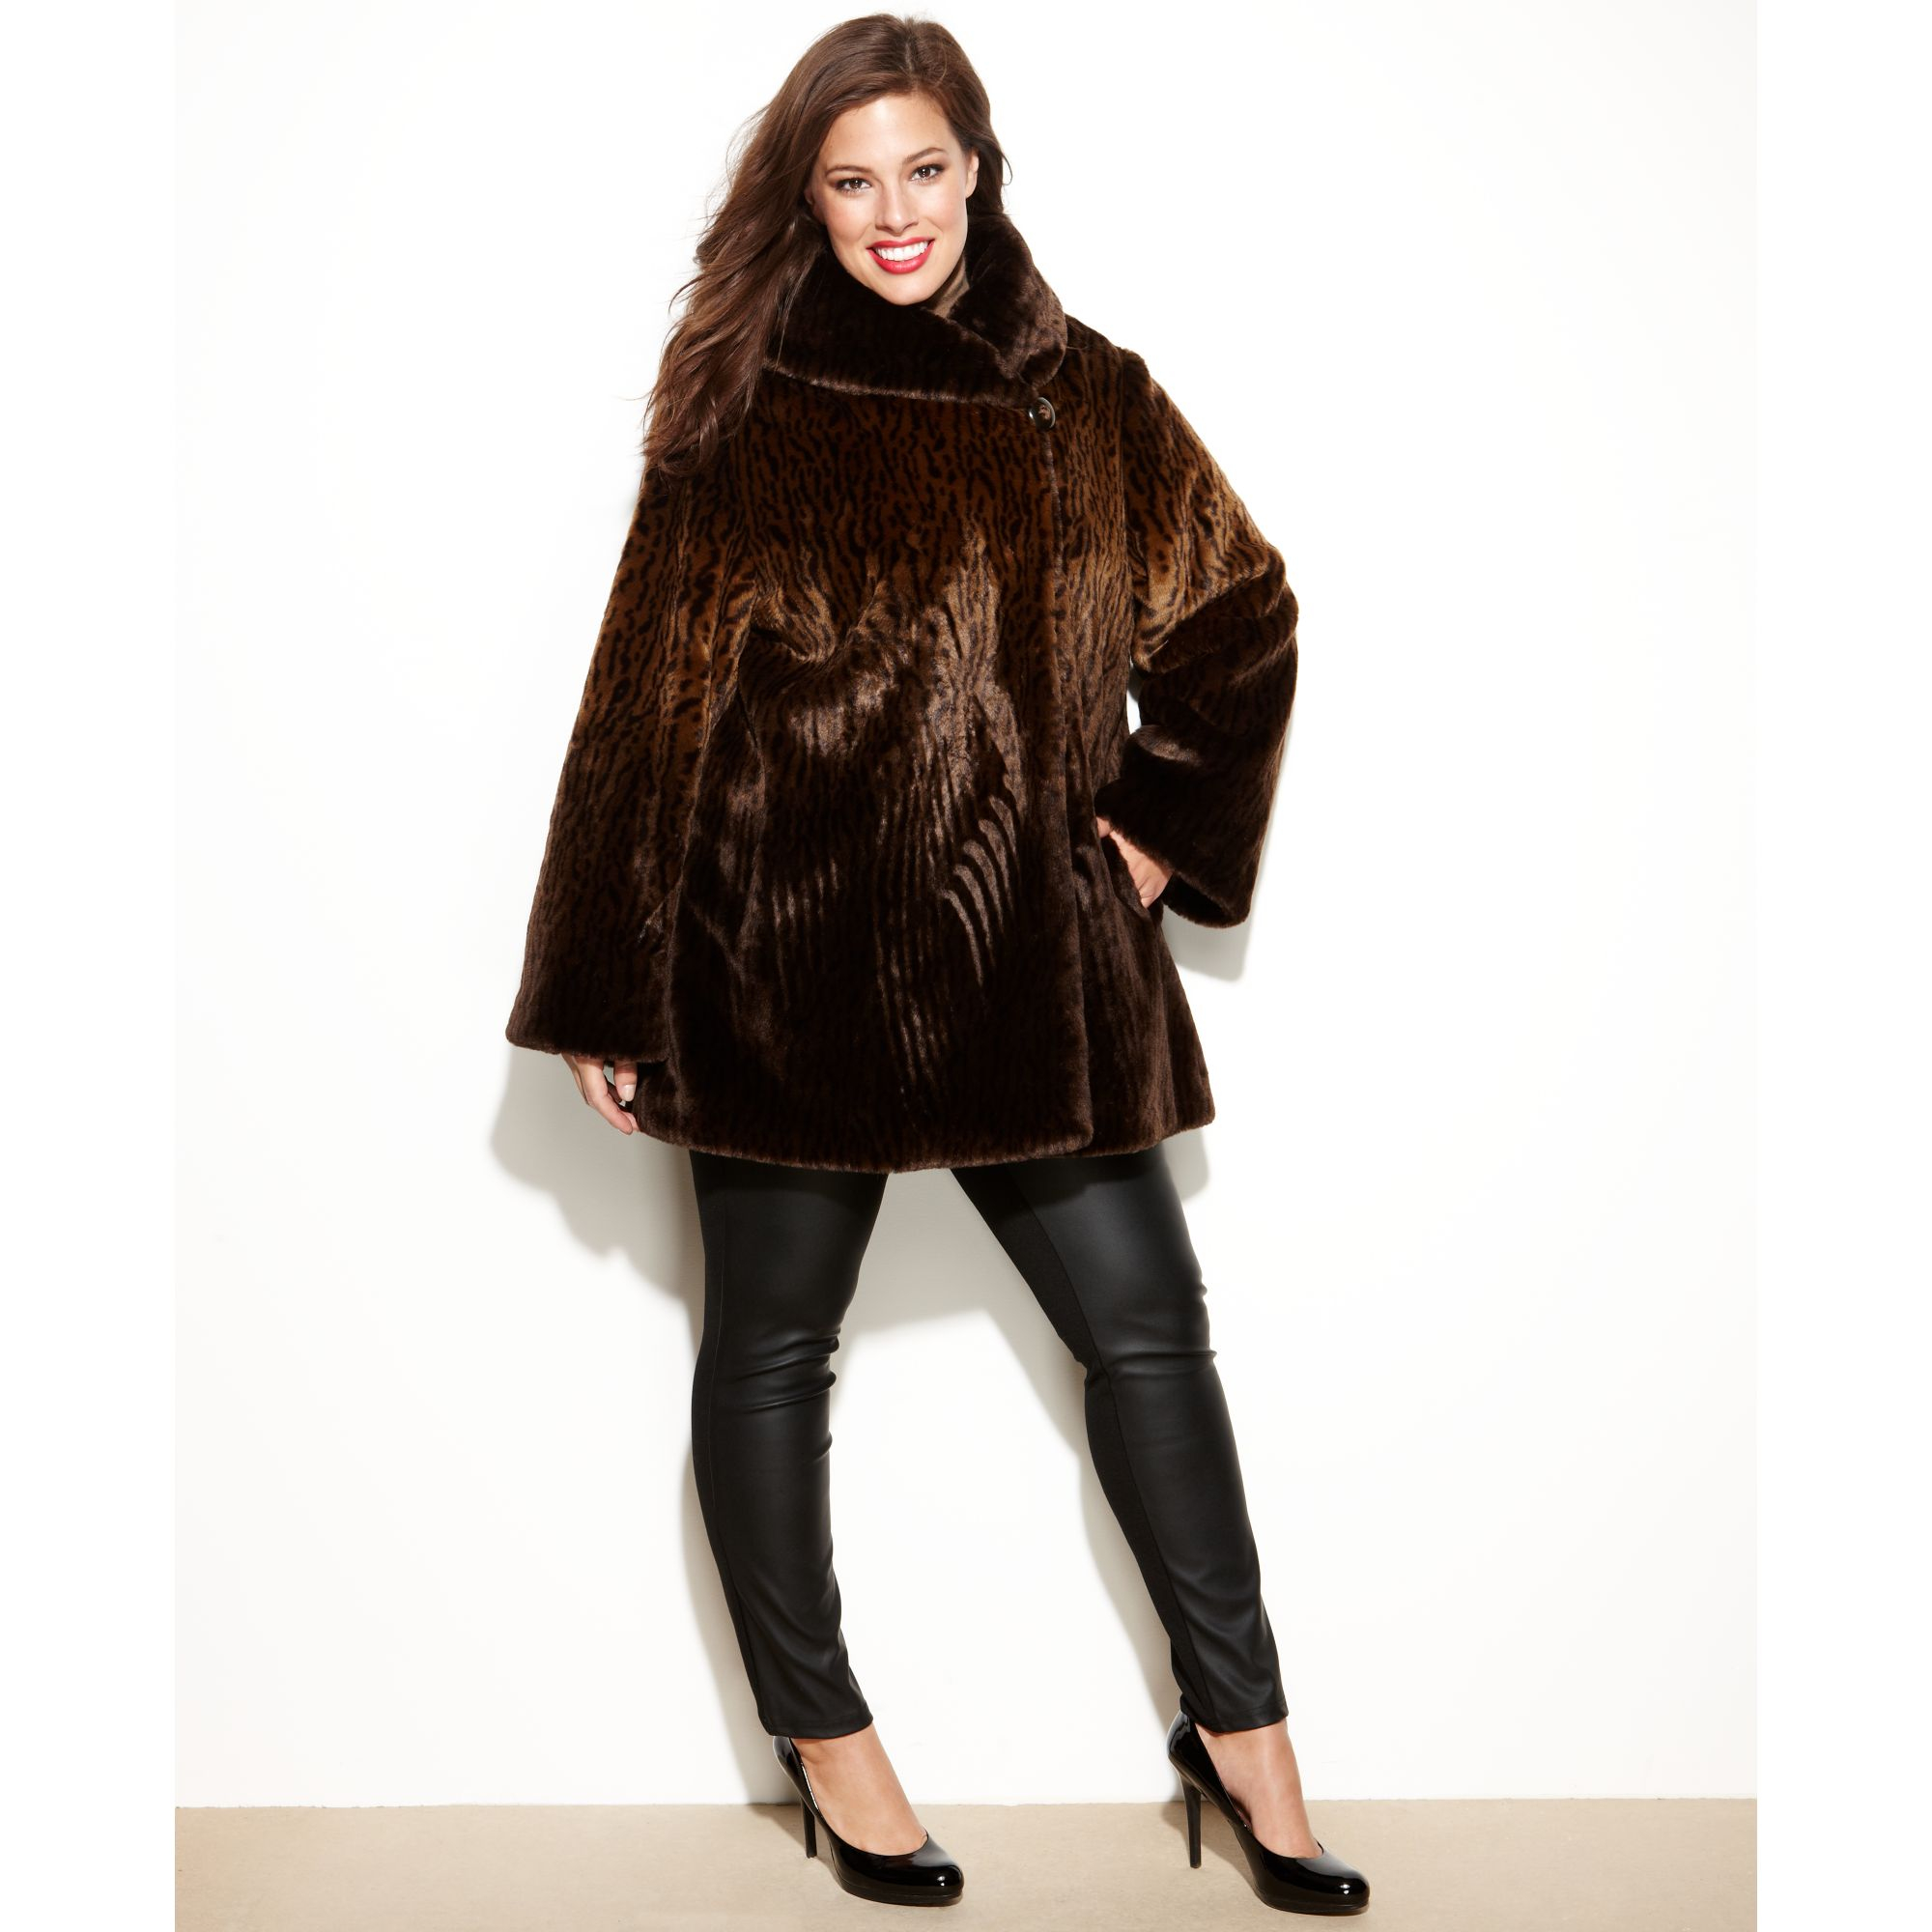 Shop for faux fur plus size online at Target. Free shipping on purchases over $35 and save 5% every day with your Target REDcard.